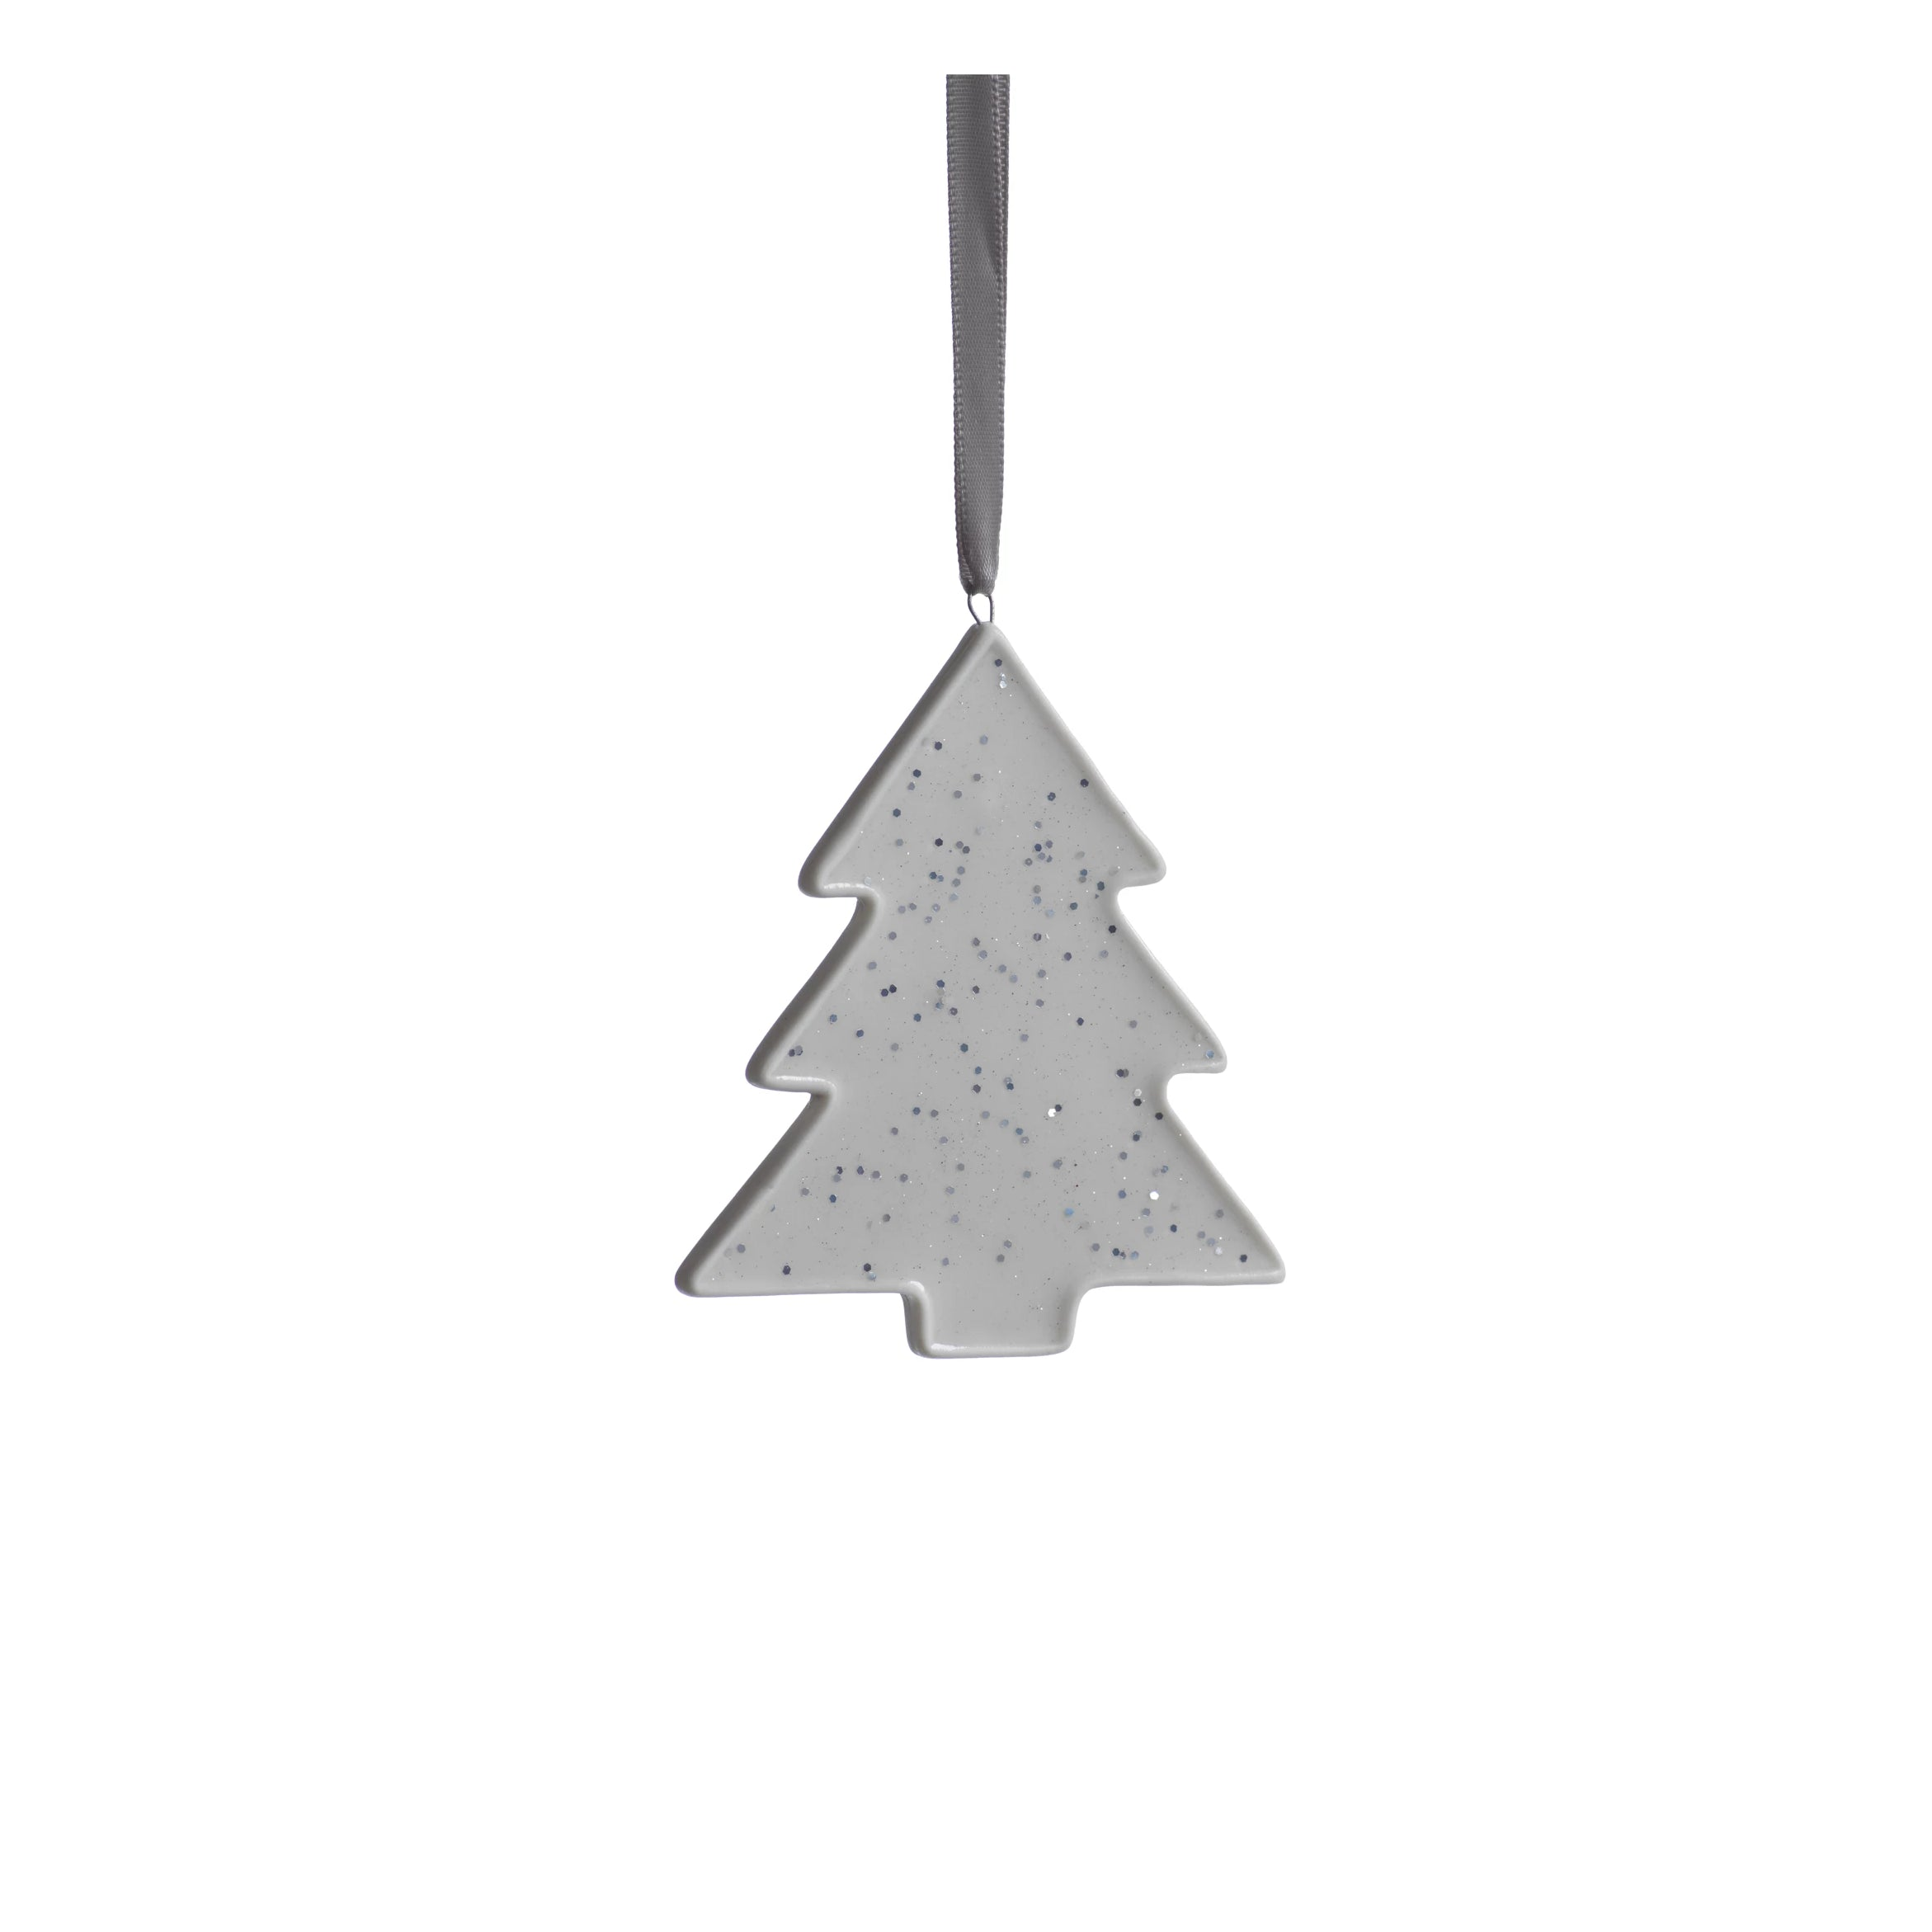 Speckled Tree Ornament - Silver